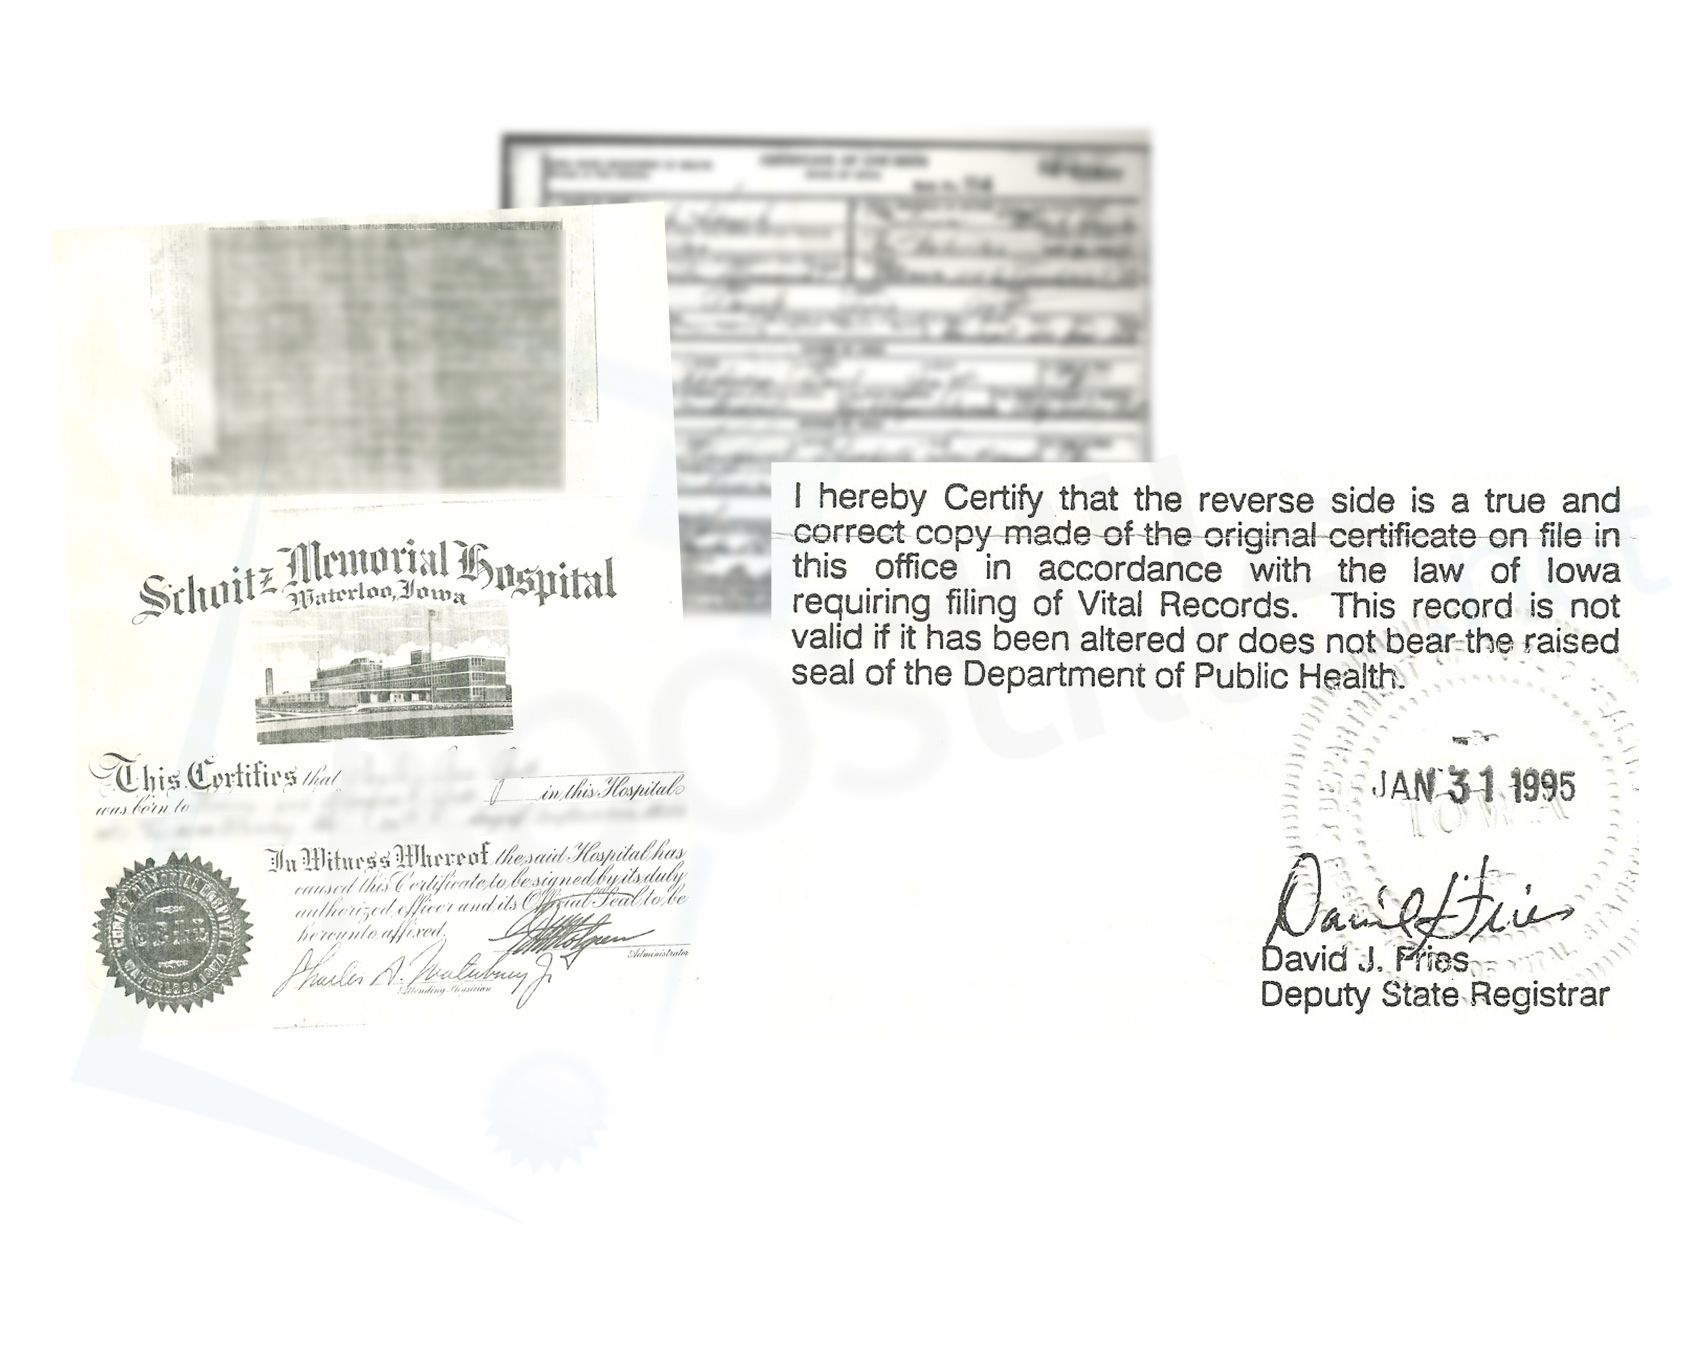 Iowa Birth Certificated Of 1954 Authenticated By David J Fries In